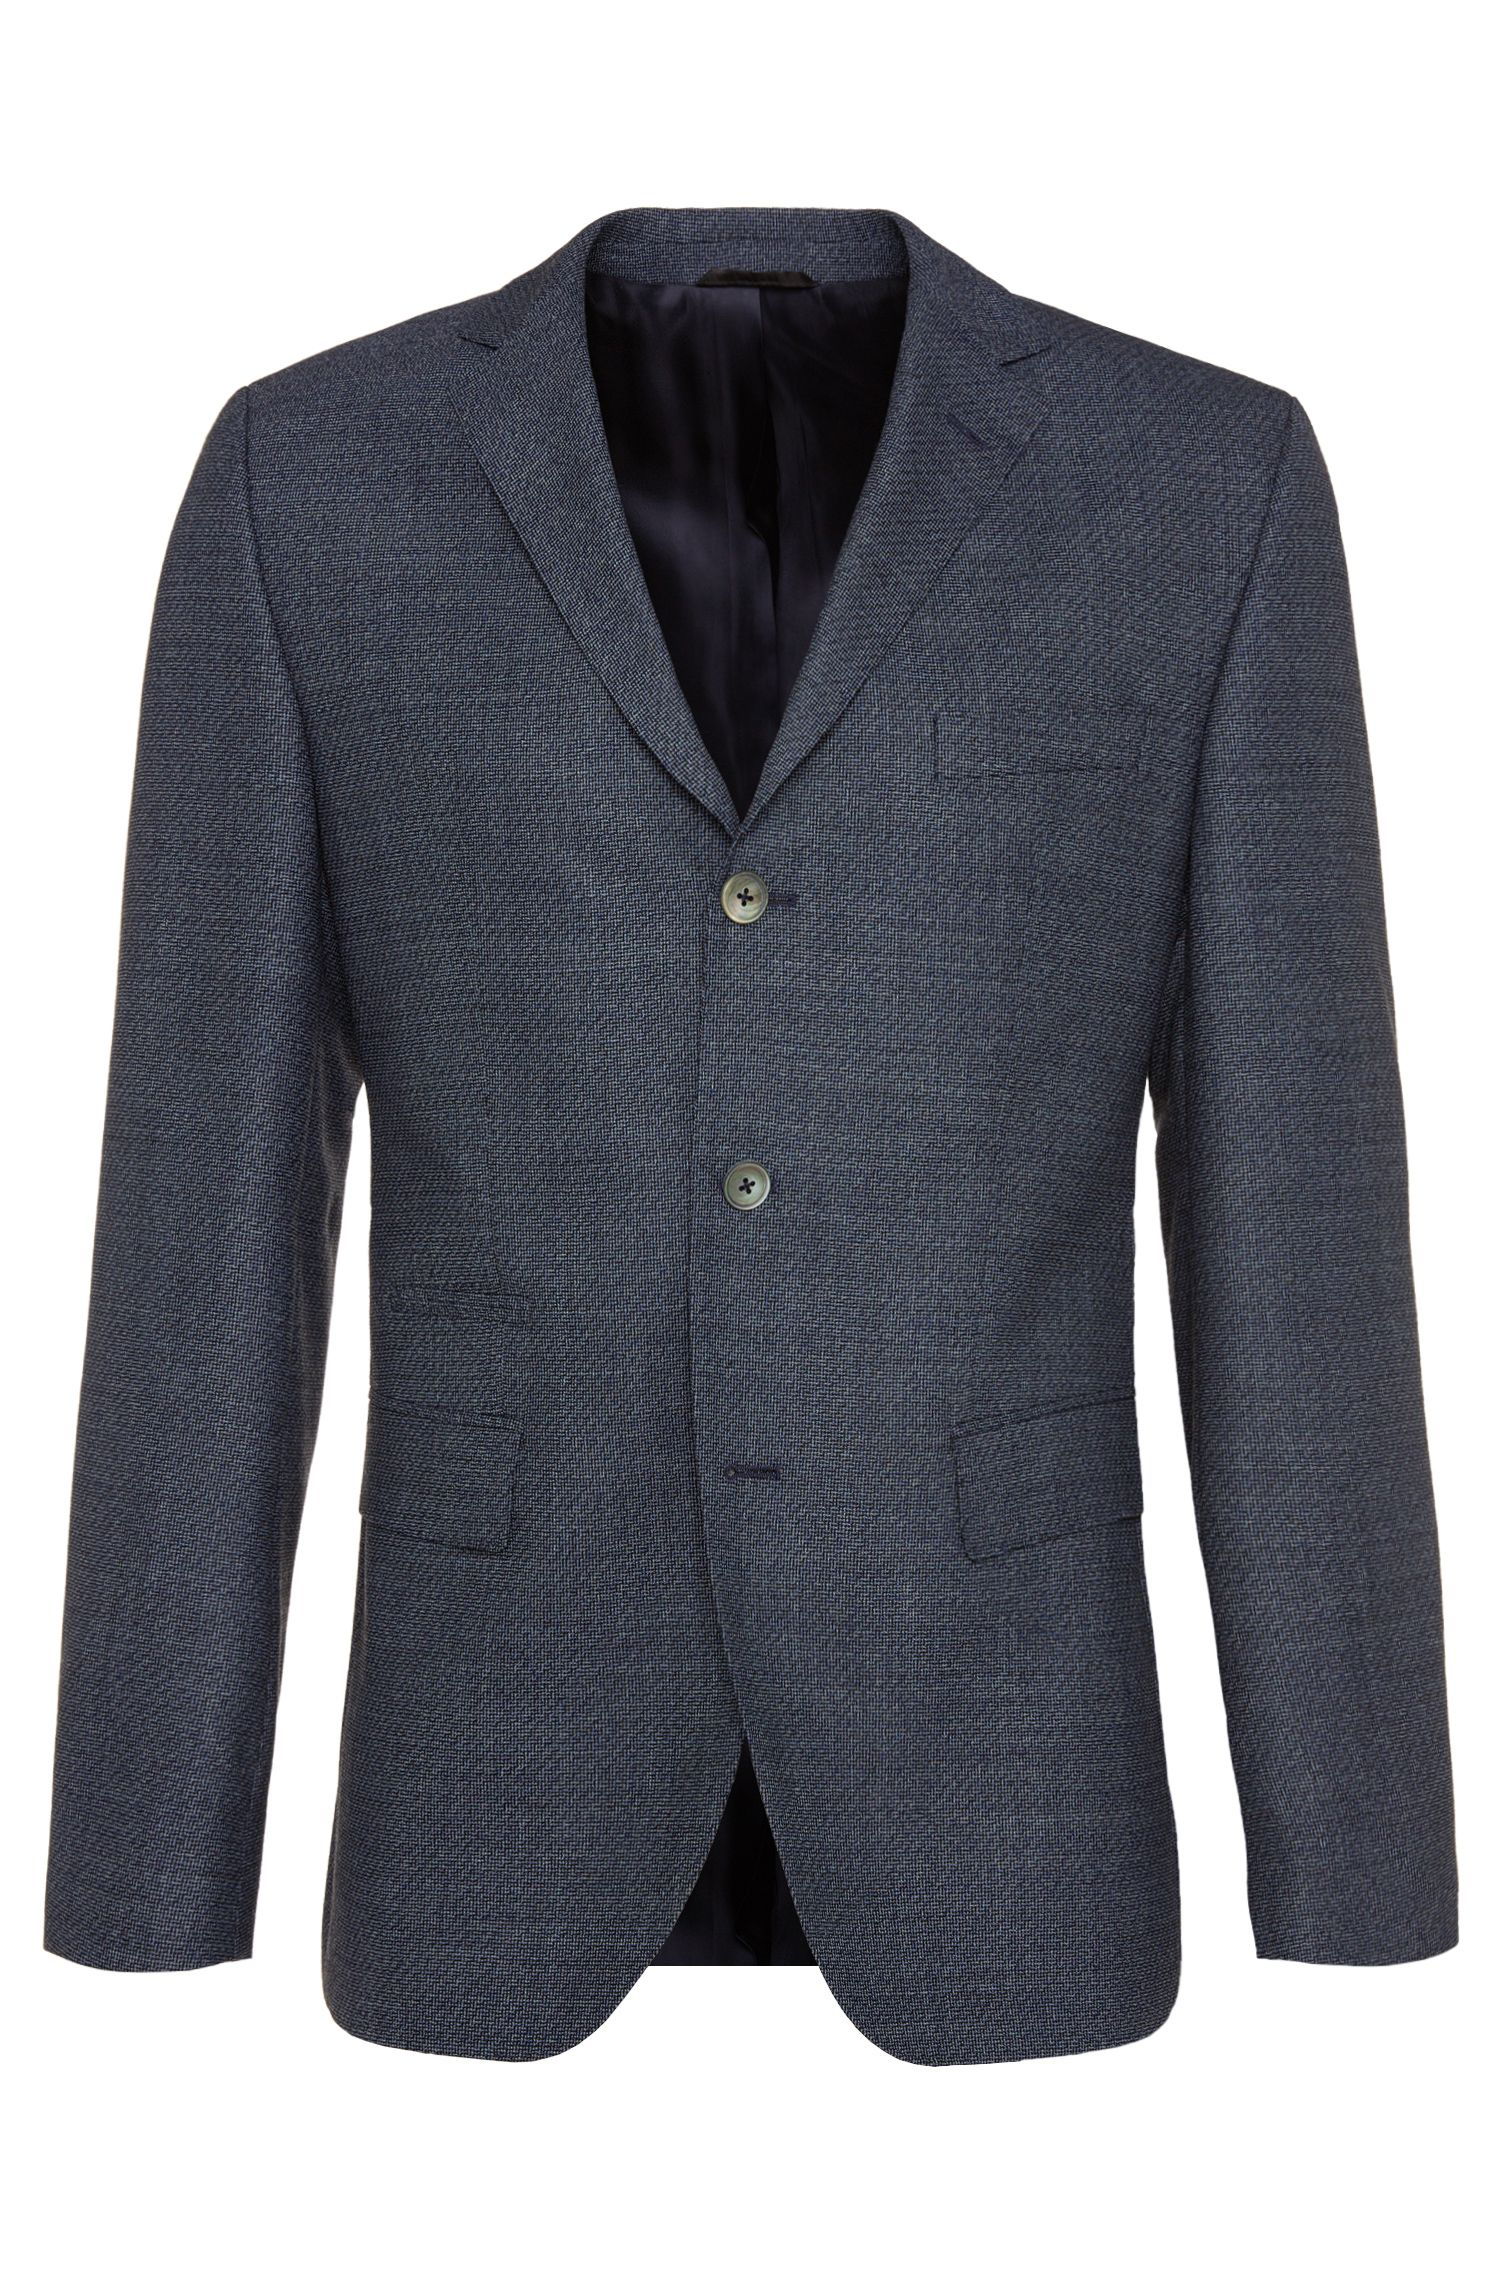 'Johnston' | Regular Fit, Virgin Wool Sport Coat